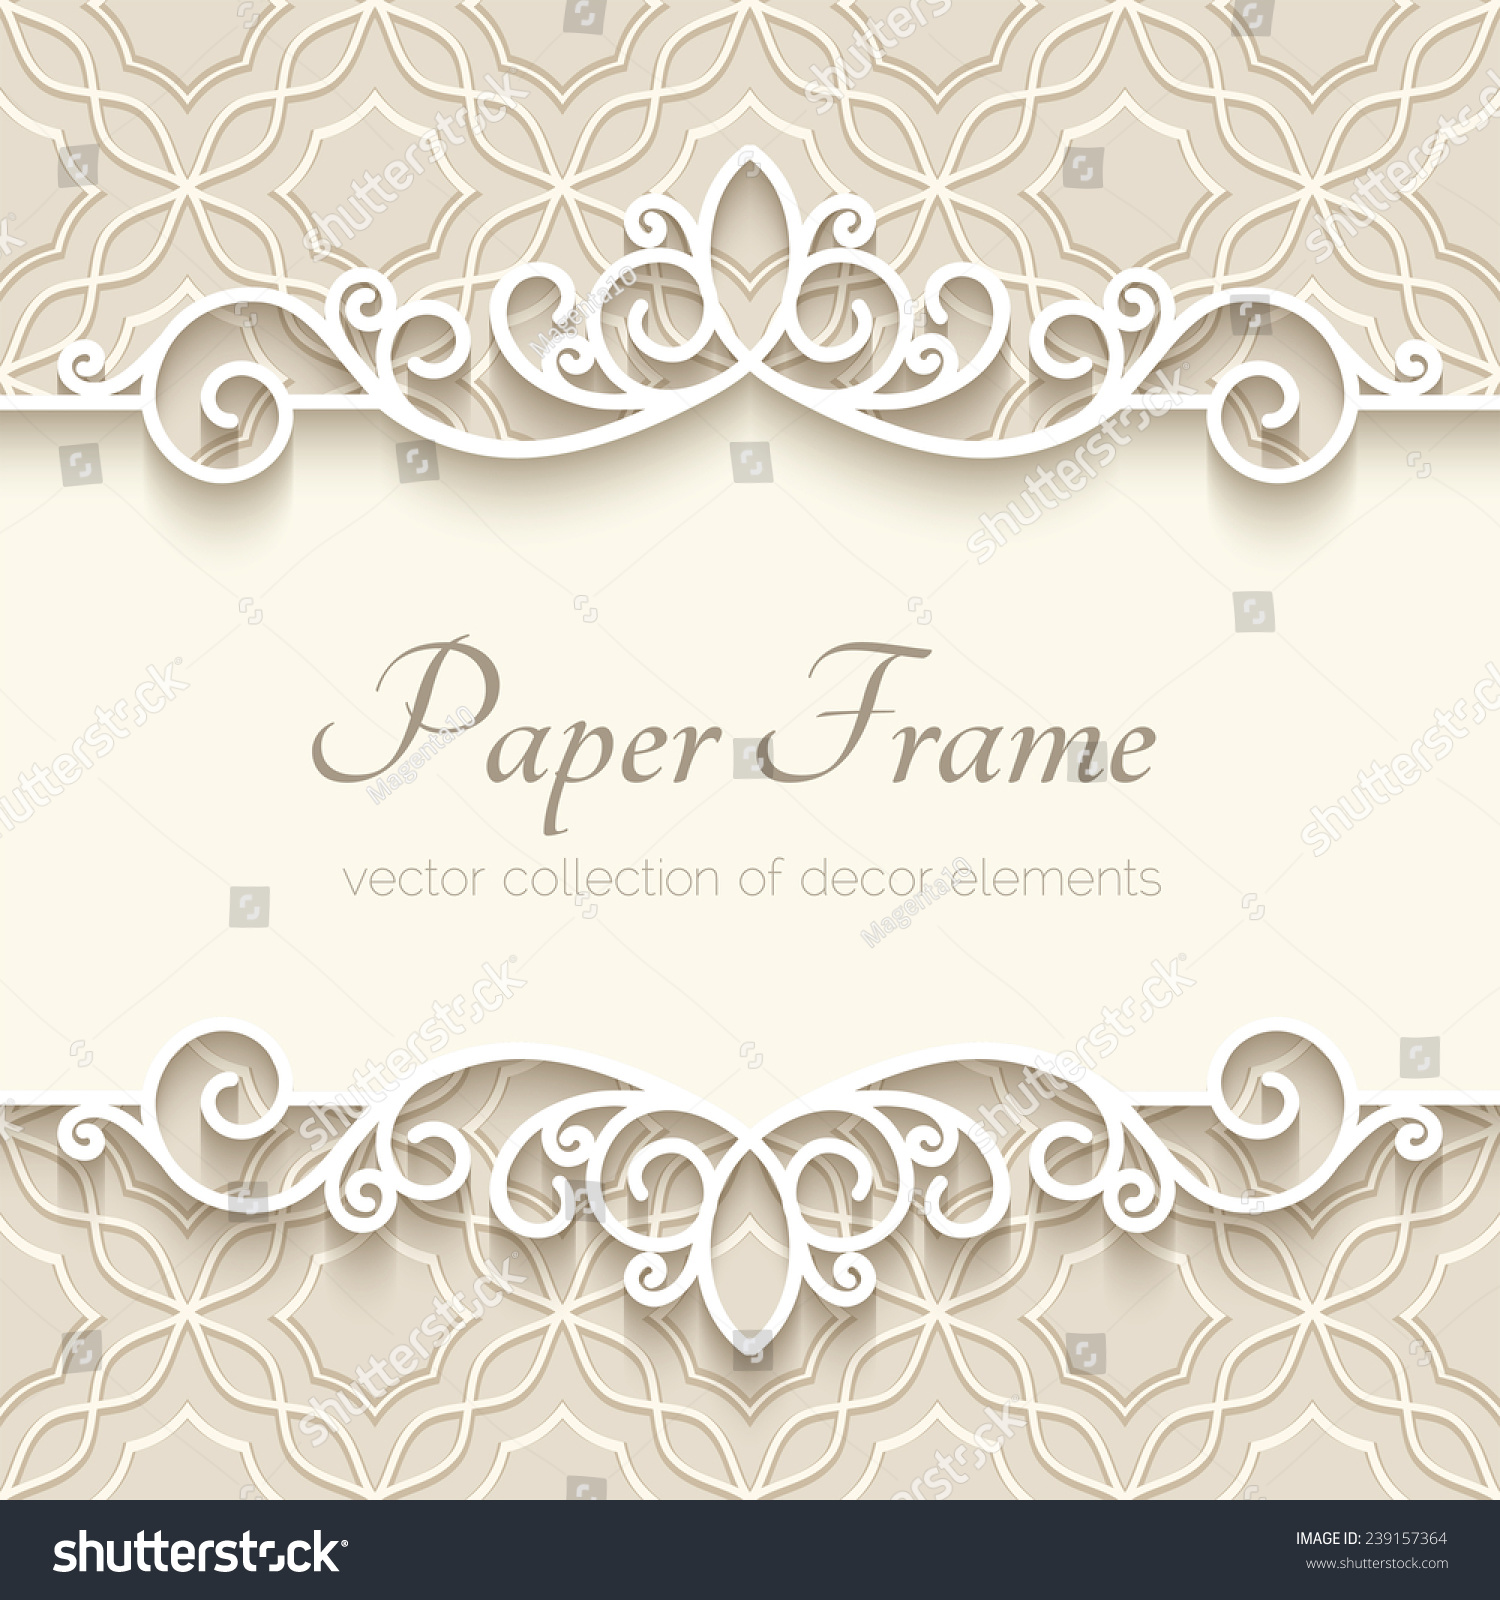 Vintage Vector Background Paper Border Decoration Vector – Border Paper Template